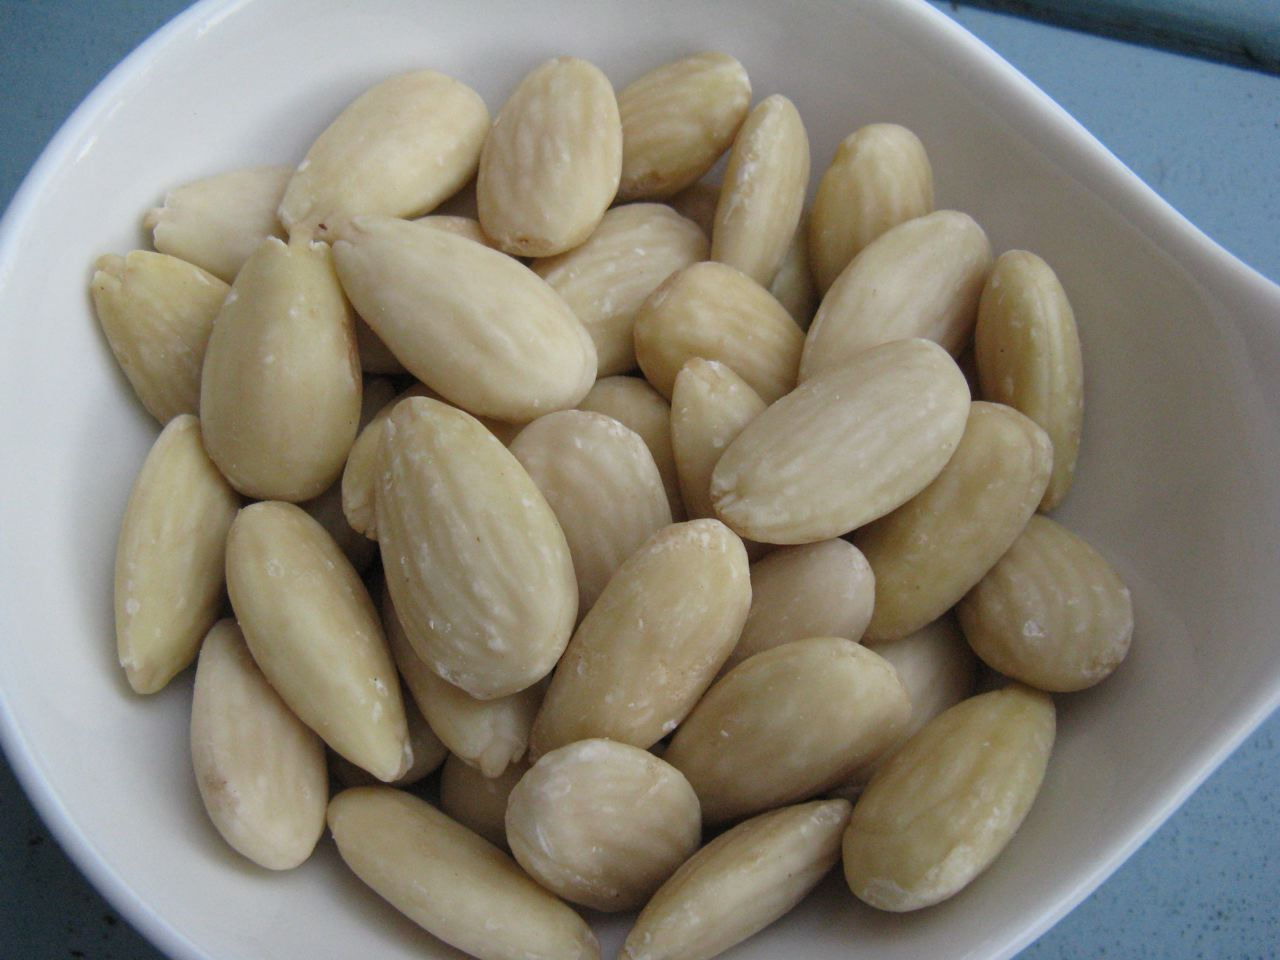 File:Blanched almonds.jpg - Wikimedia Commons